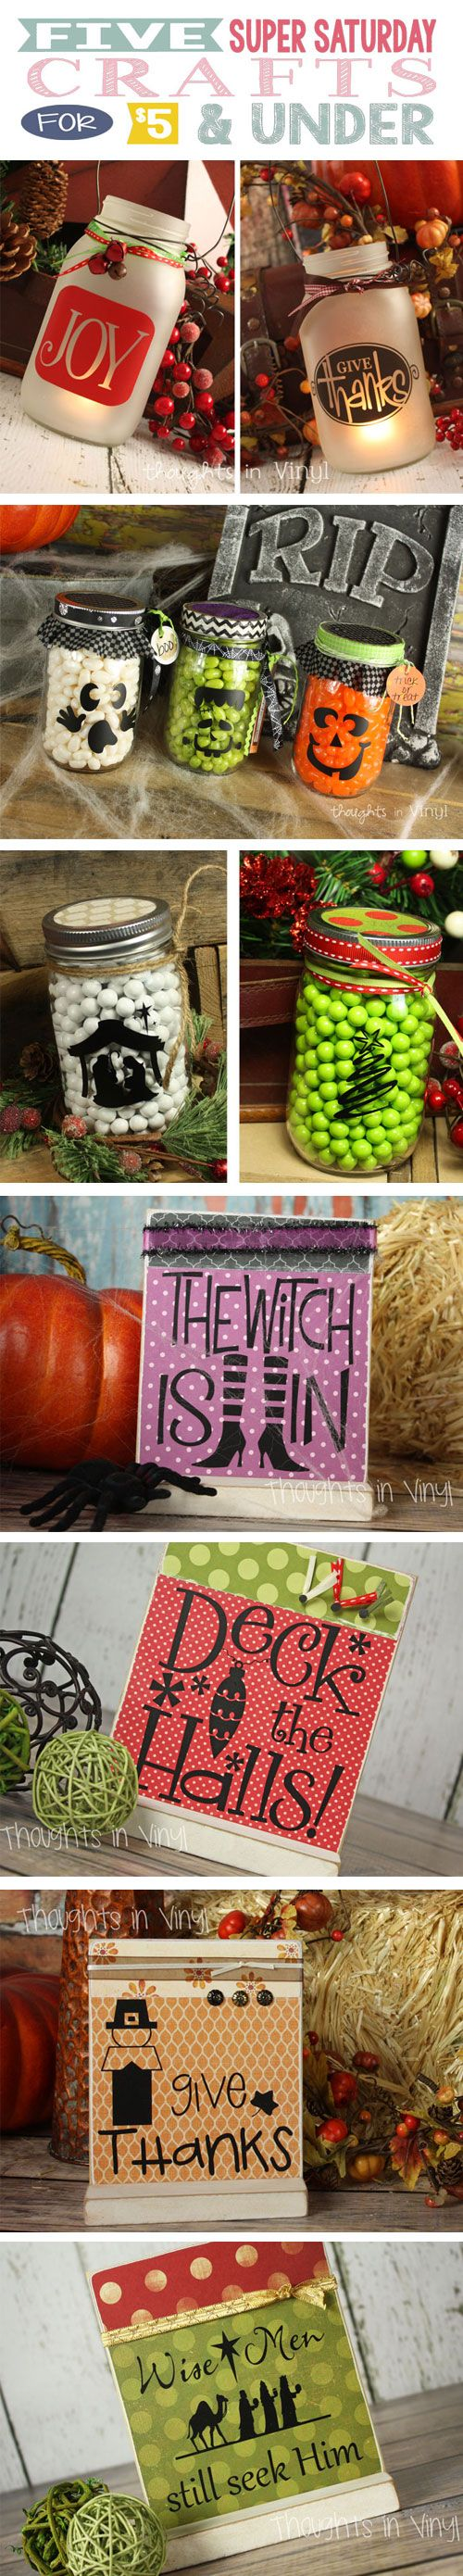 Adorable Super Saturday or Girls Night out crafts! Great for neighbor gifts too :)